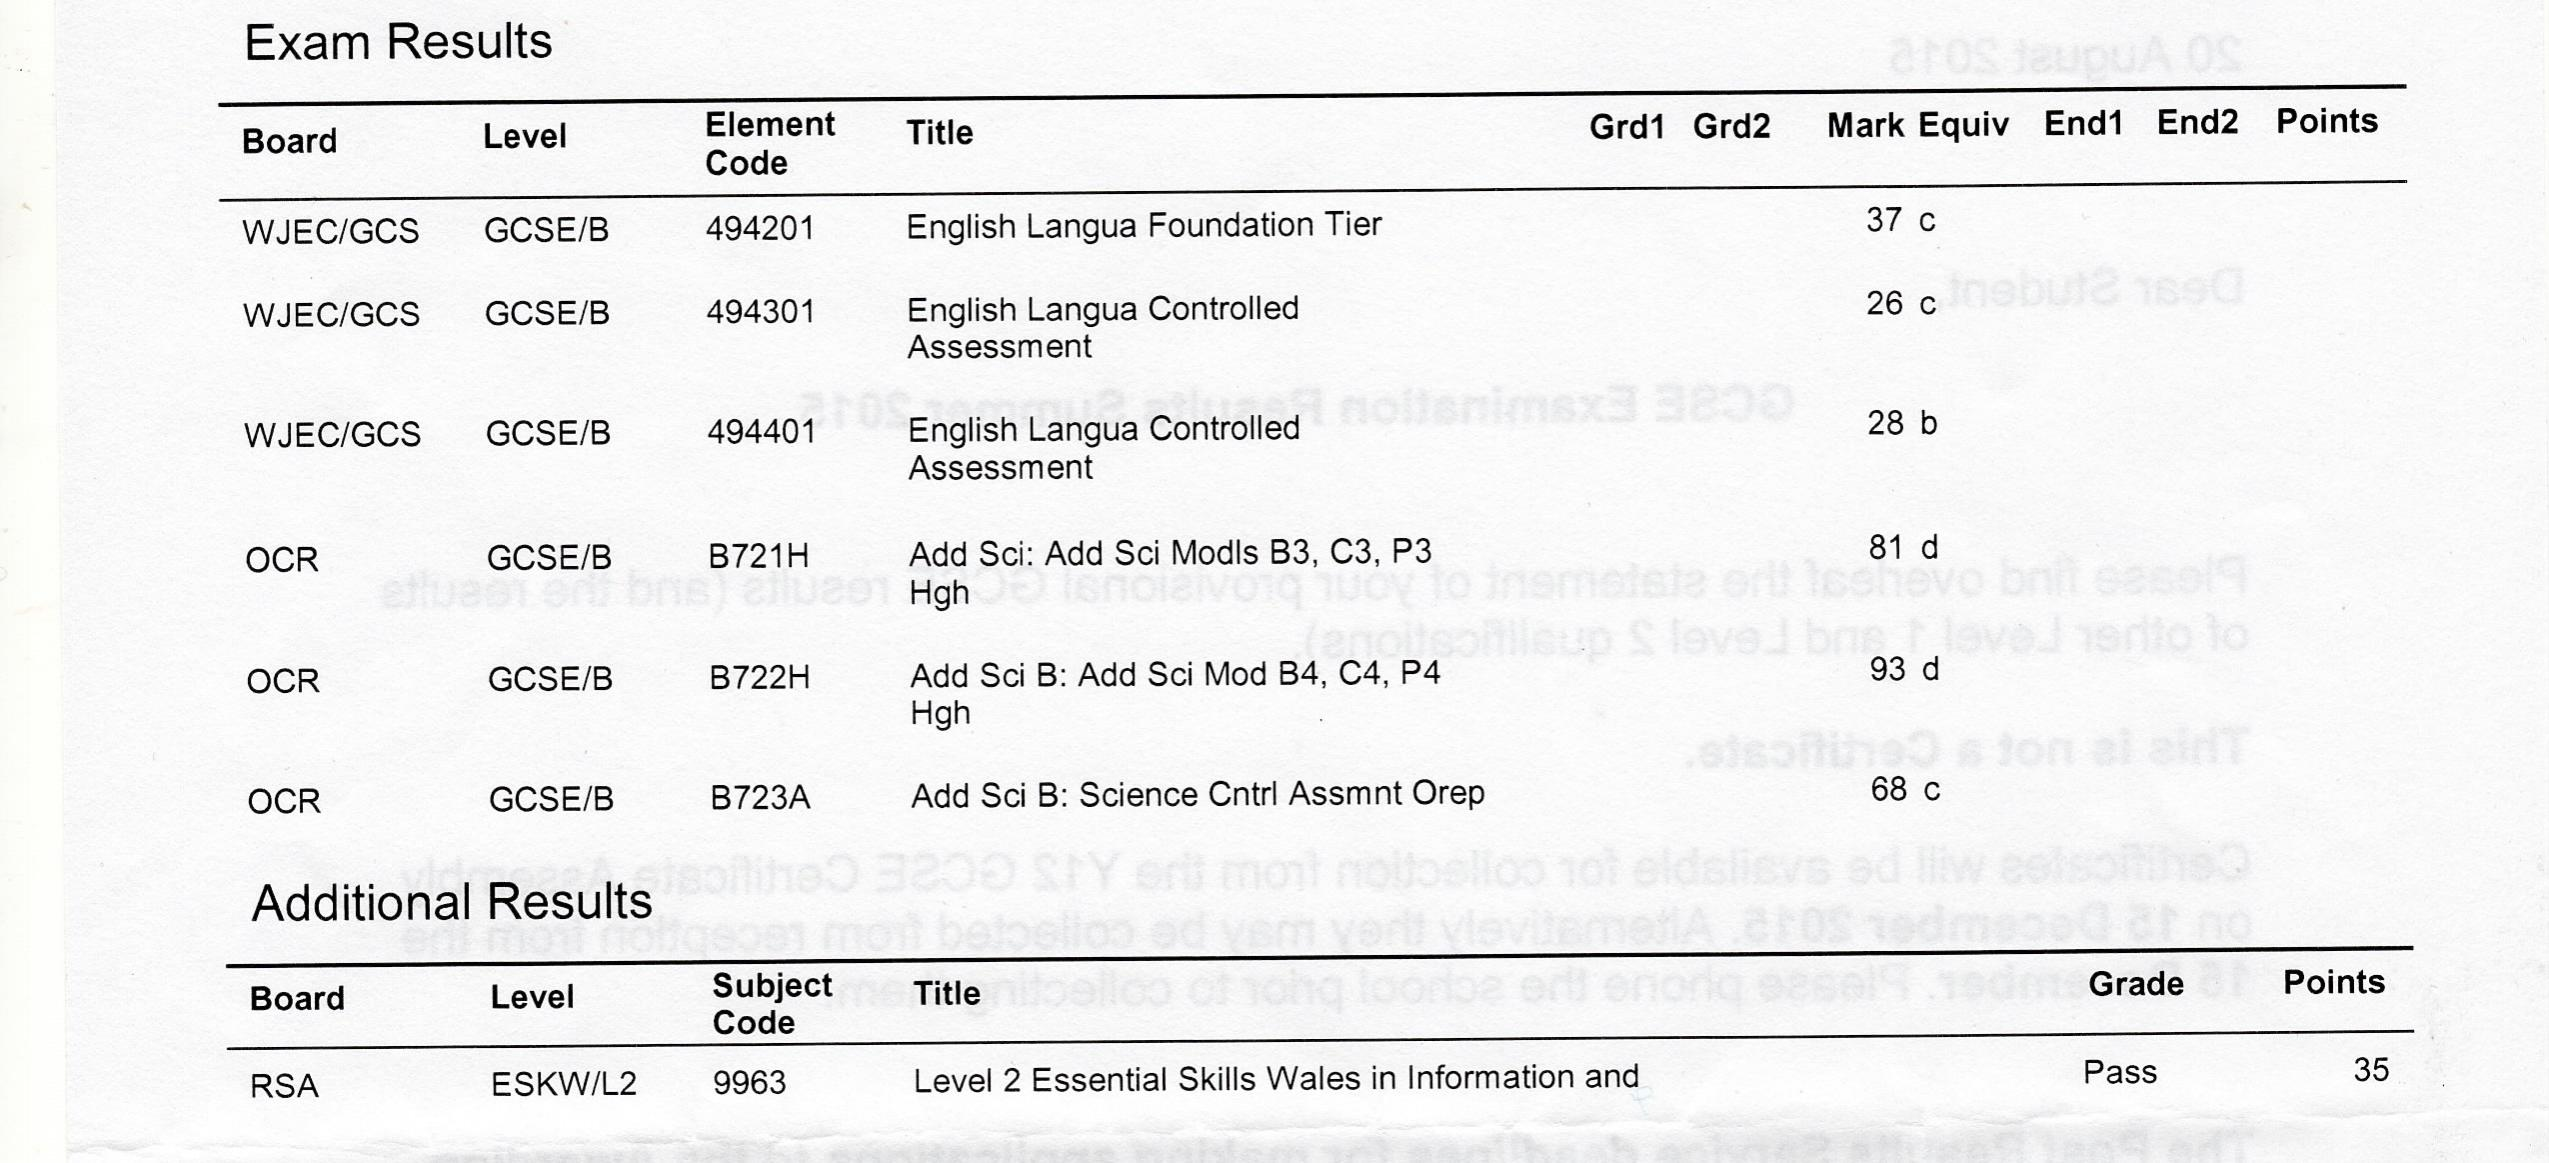 Are my gcse results good?